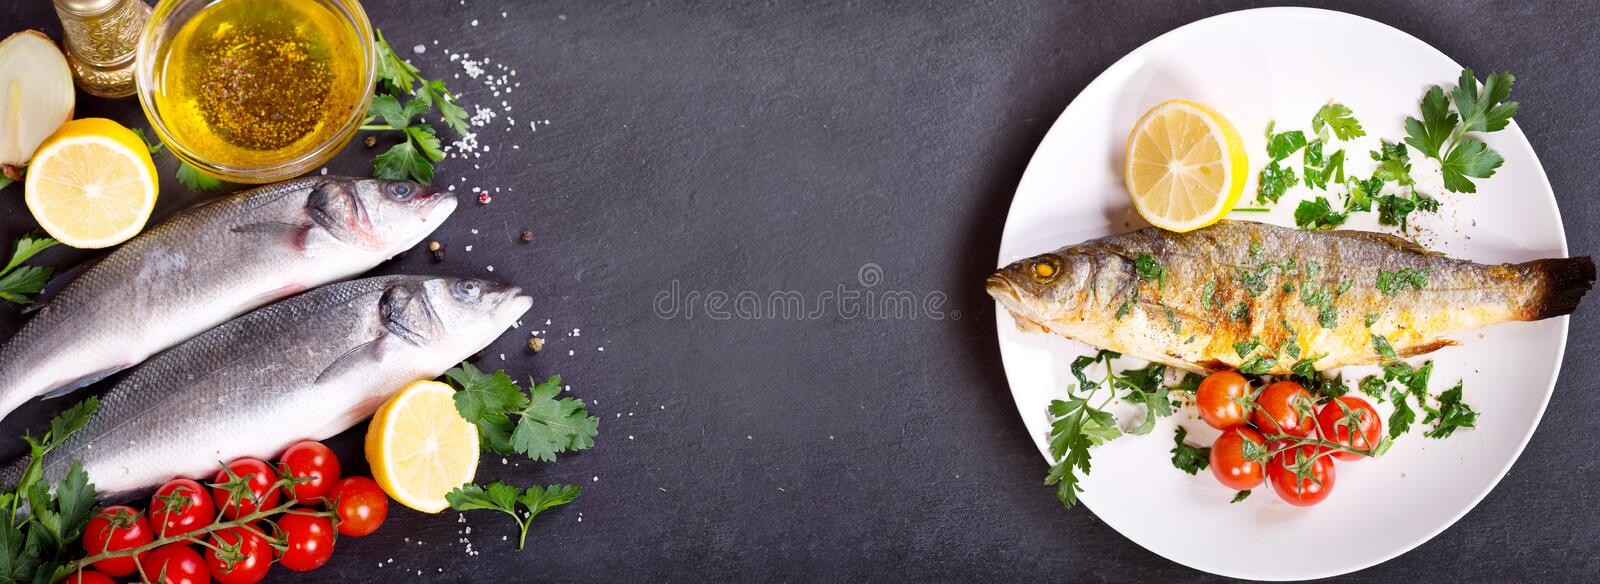 Baked sea bass and fresh fish with ingredients for cooking royalty free stock photography